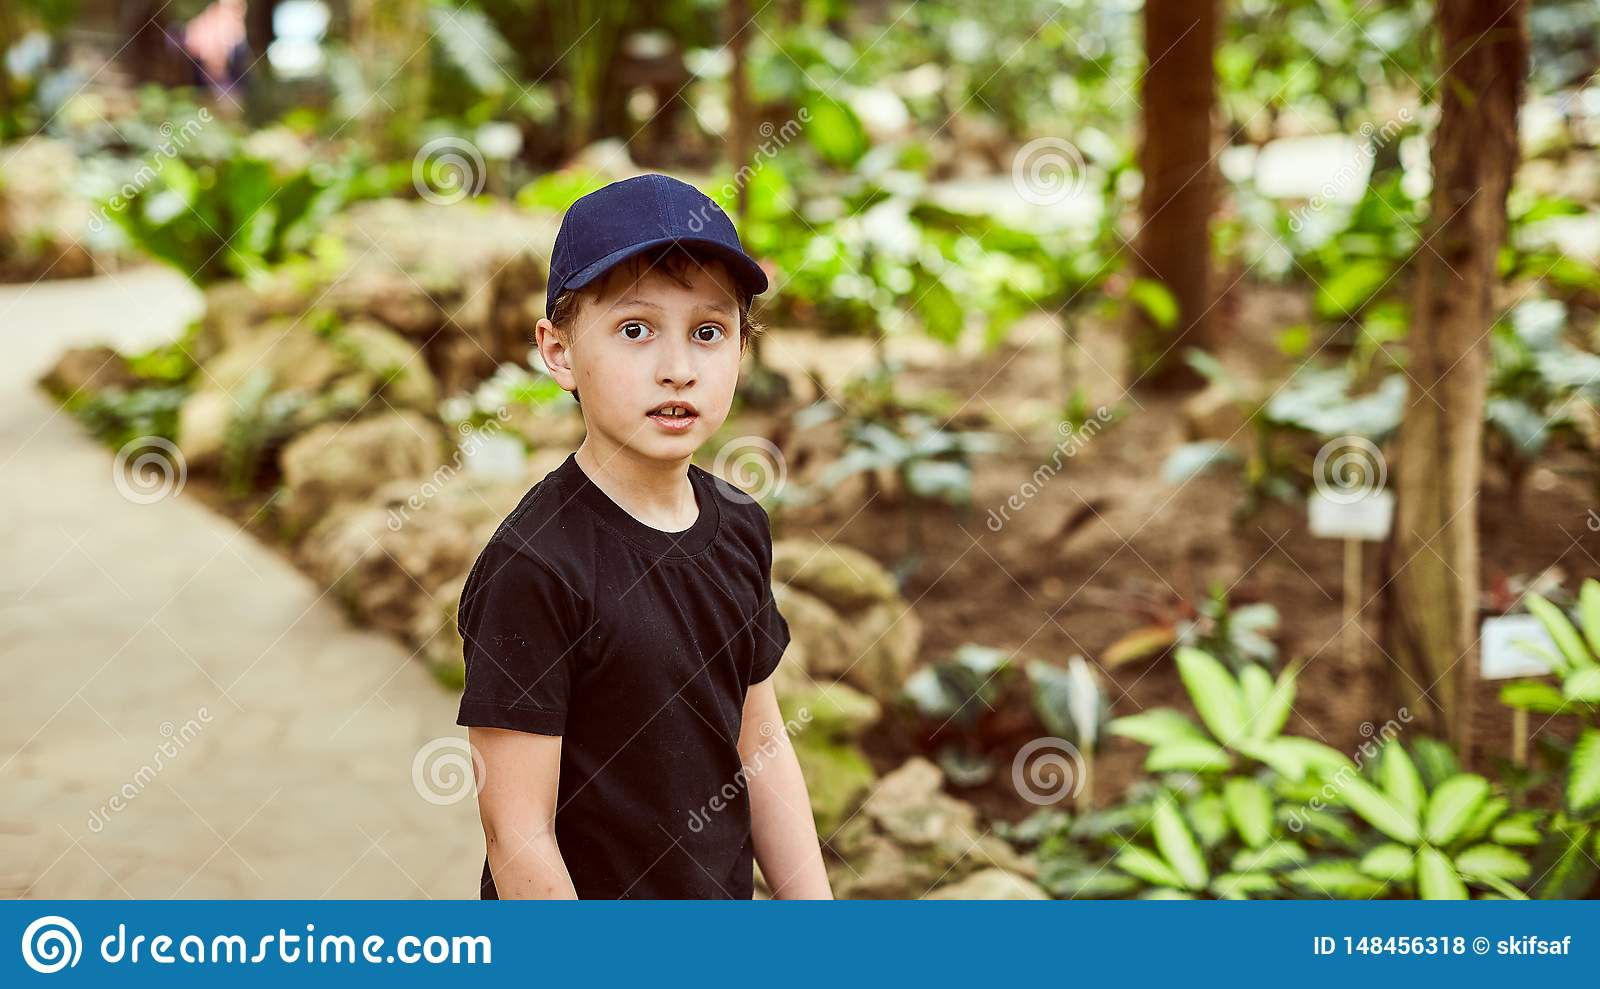 Boy in a cap in the summer outdoors in the Park